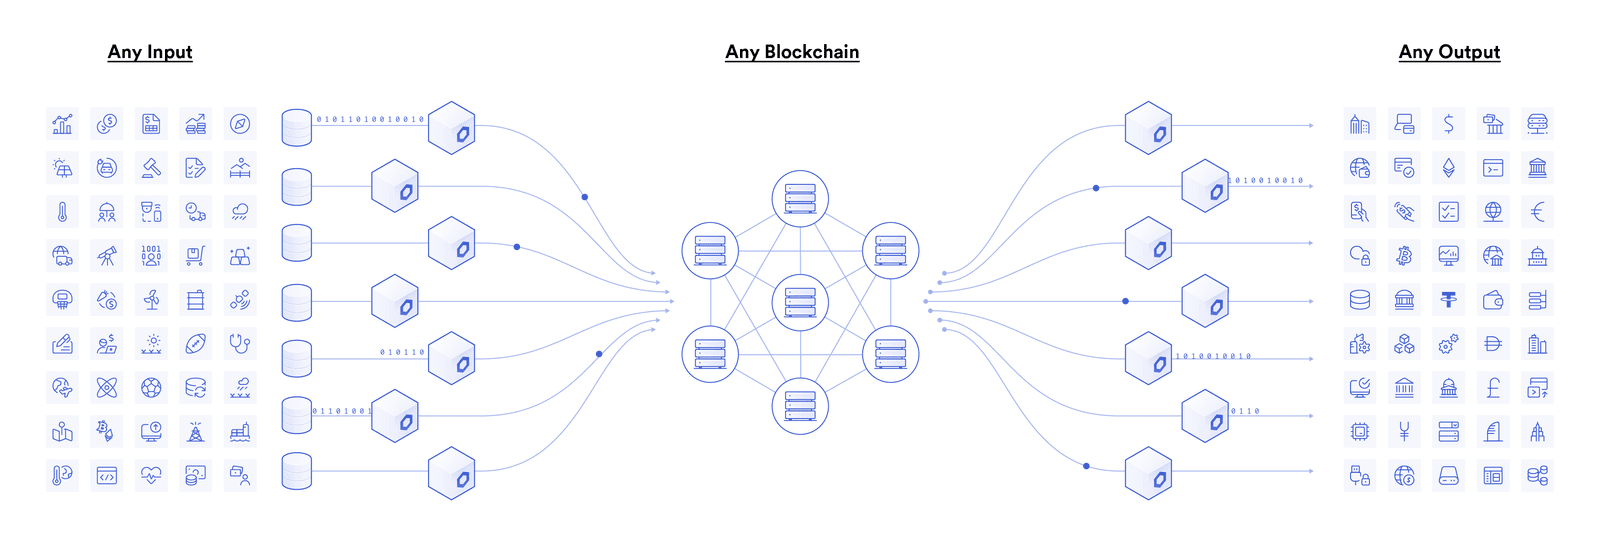 Hybrid smart contracts